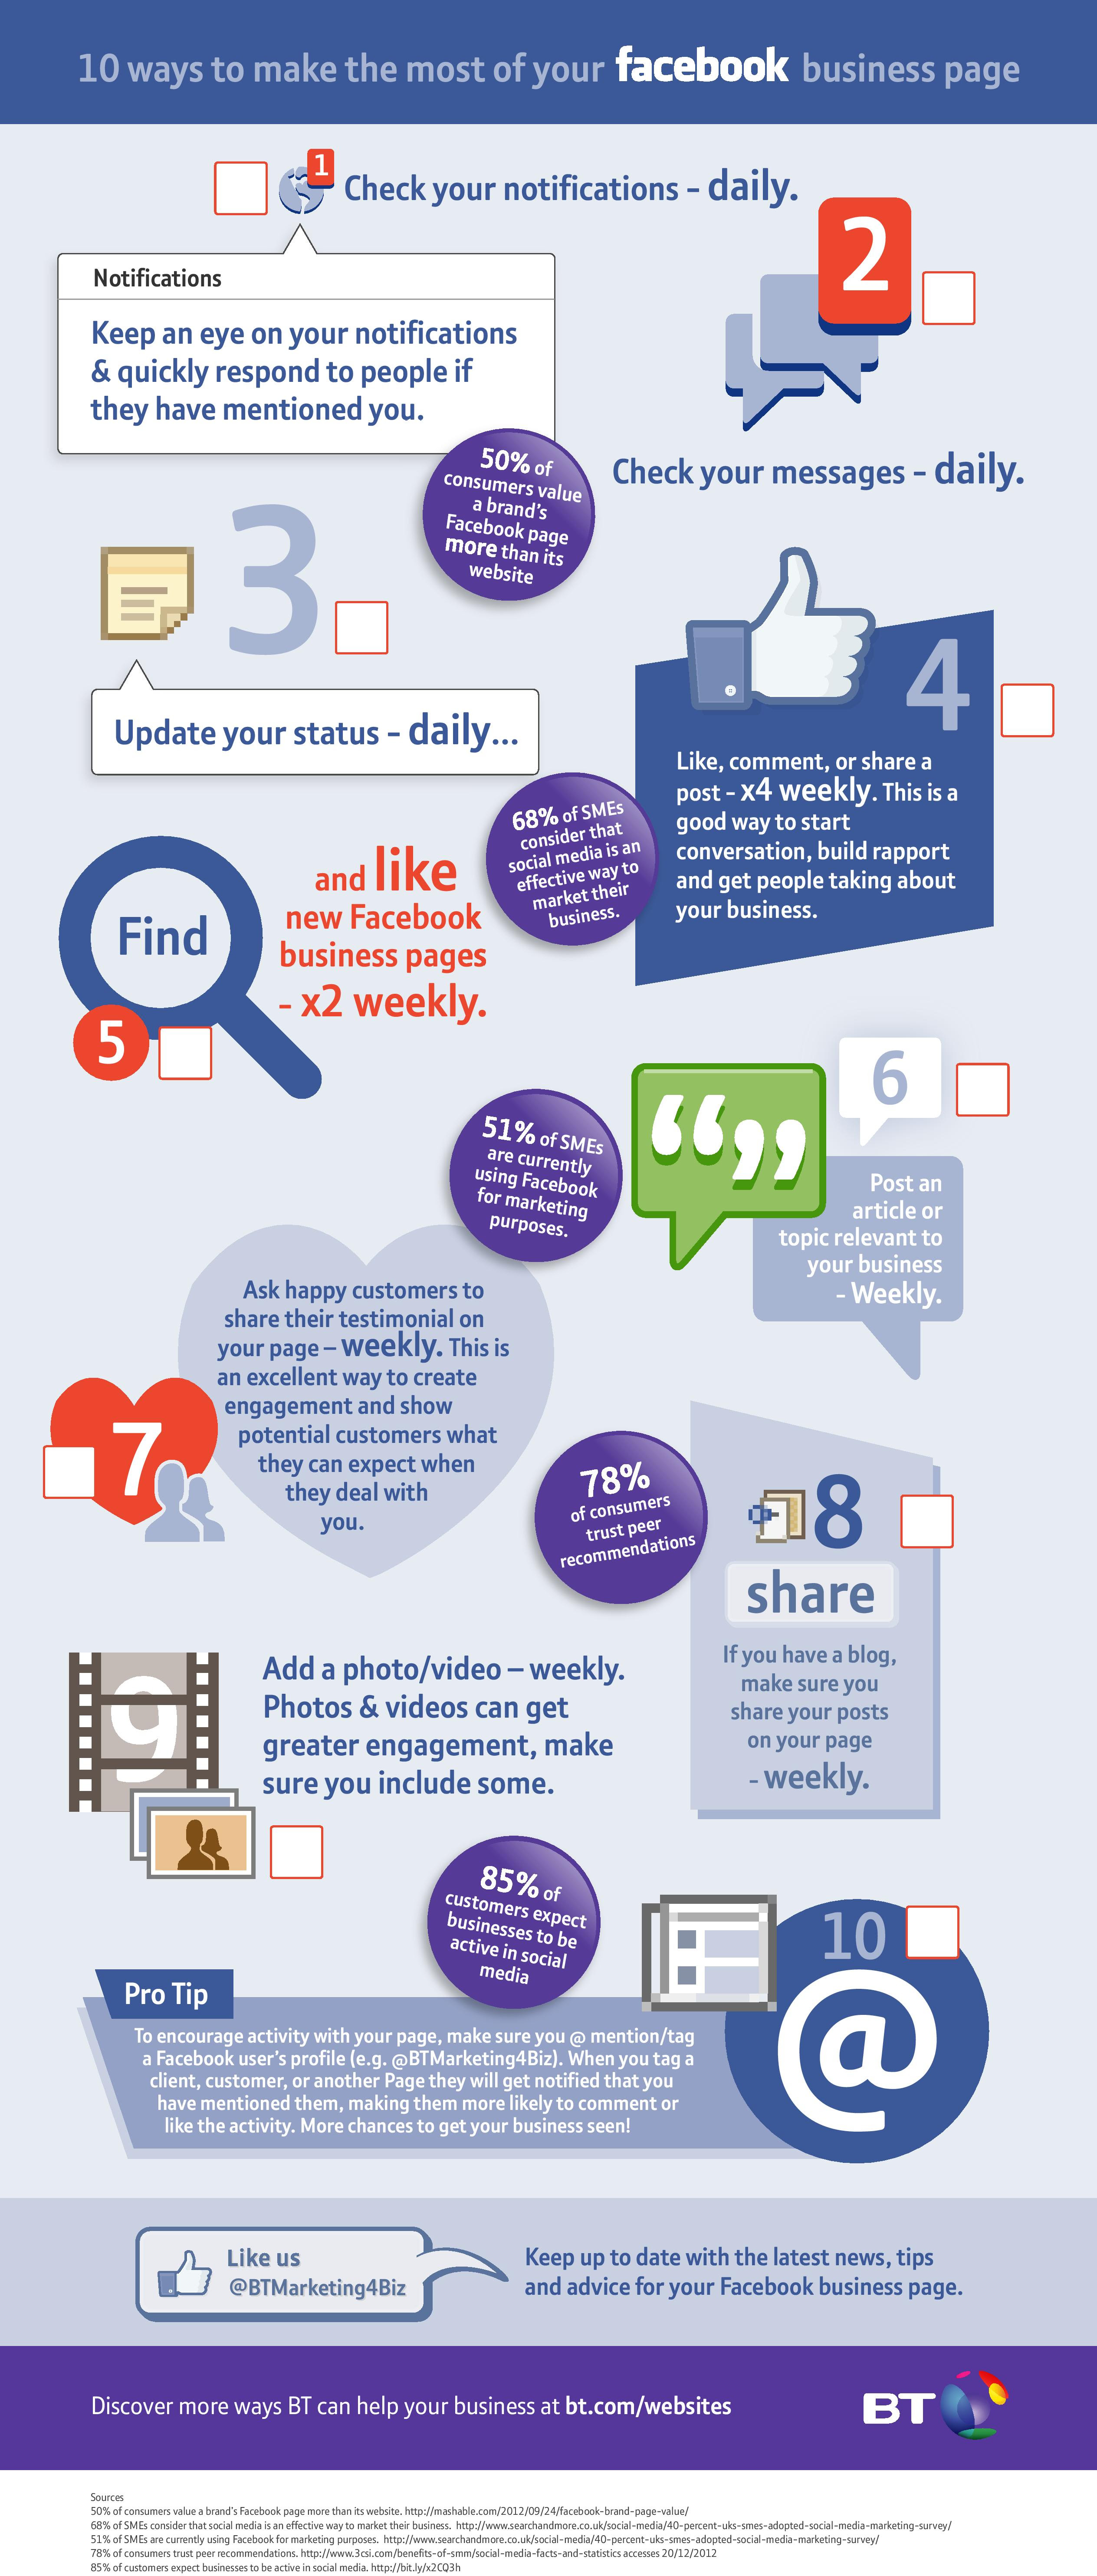 infographic:10 tips to make the most out of your Facebook business page